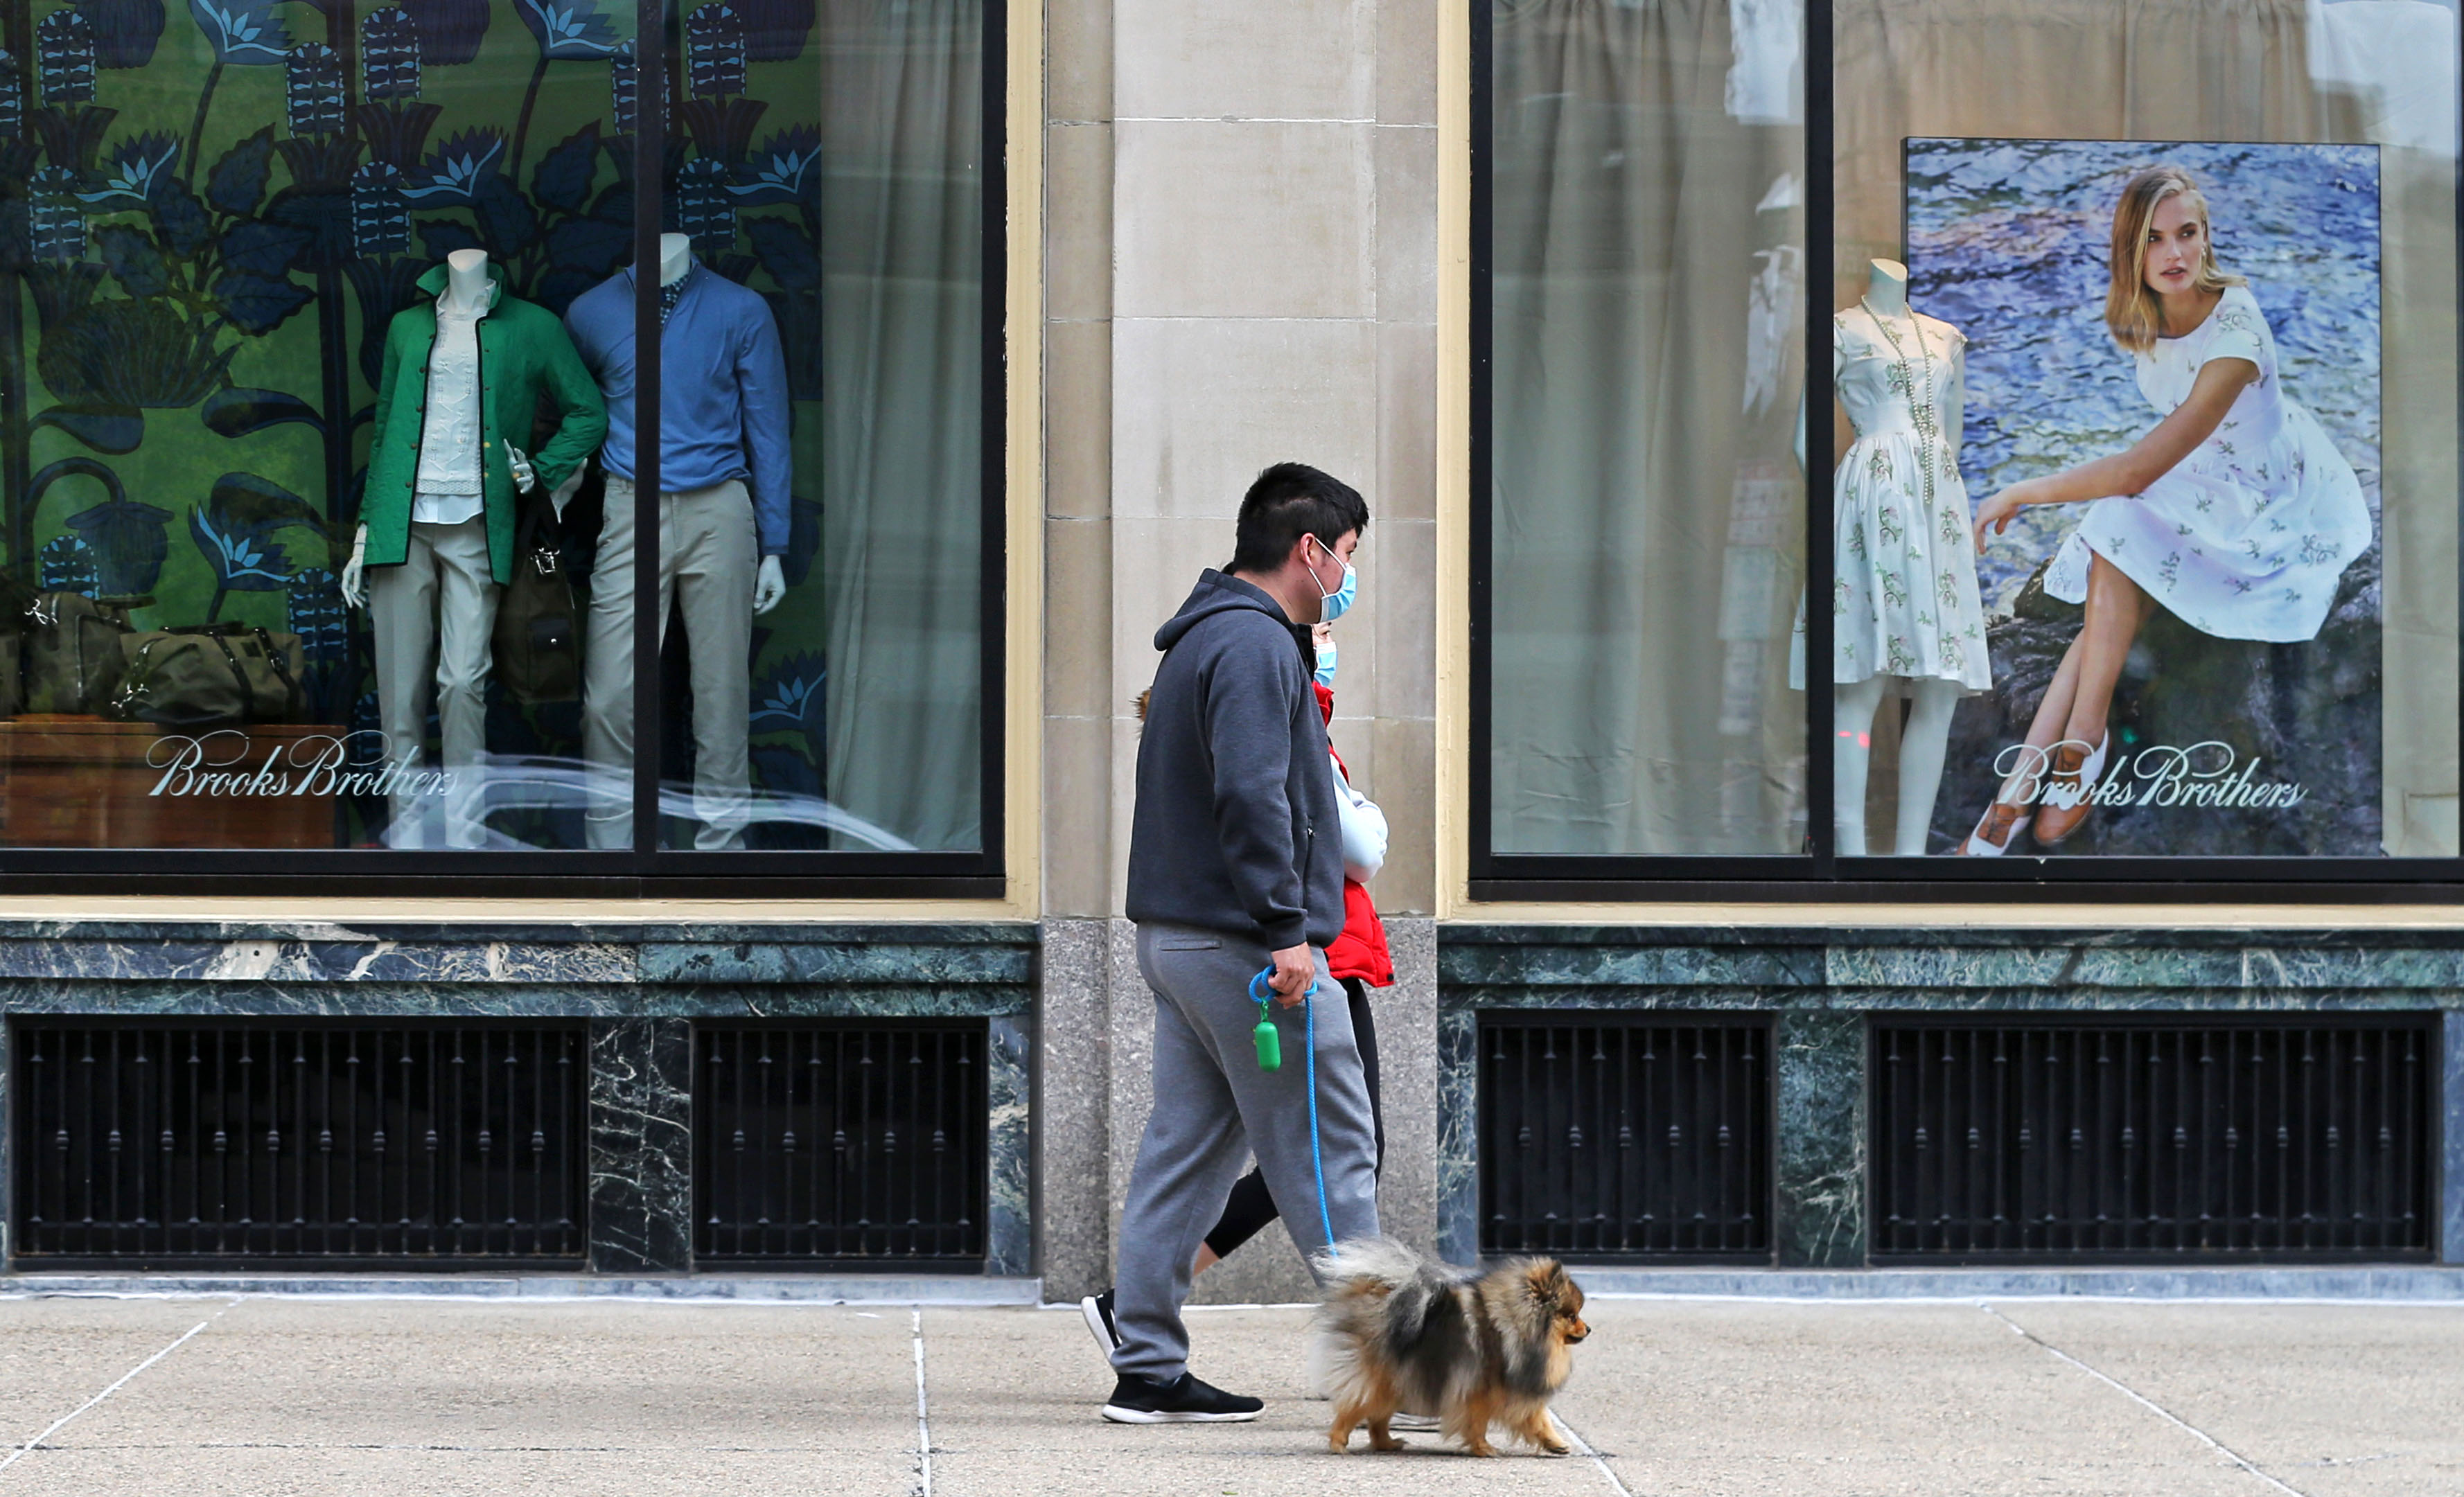 People walk past a Brooks Brothers store in Boston on May 11.